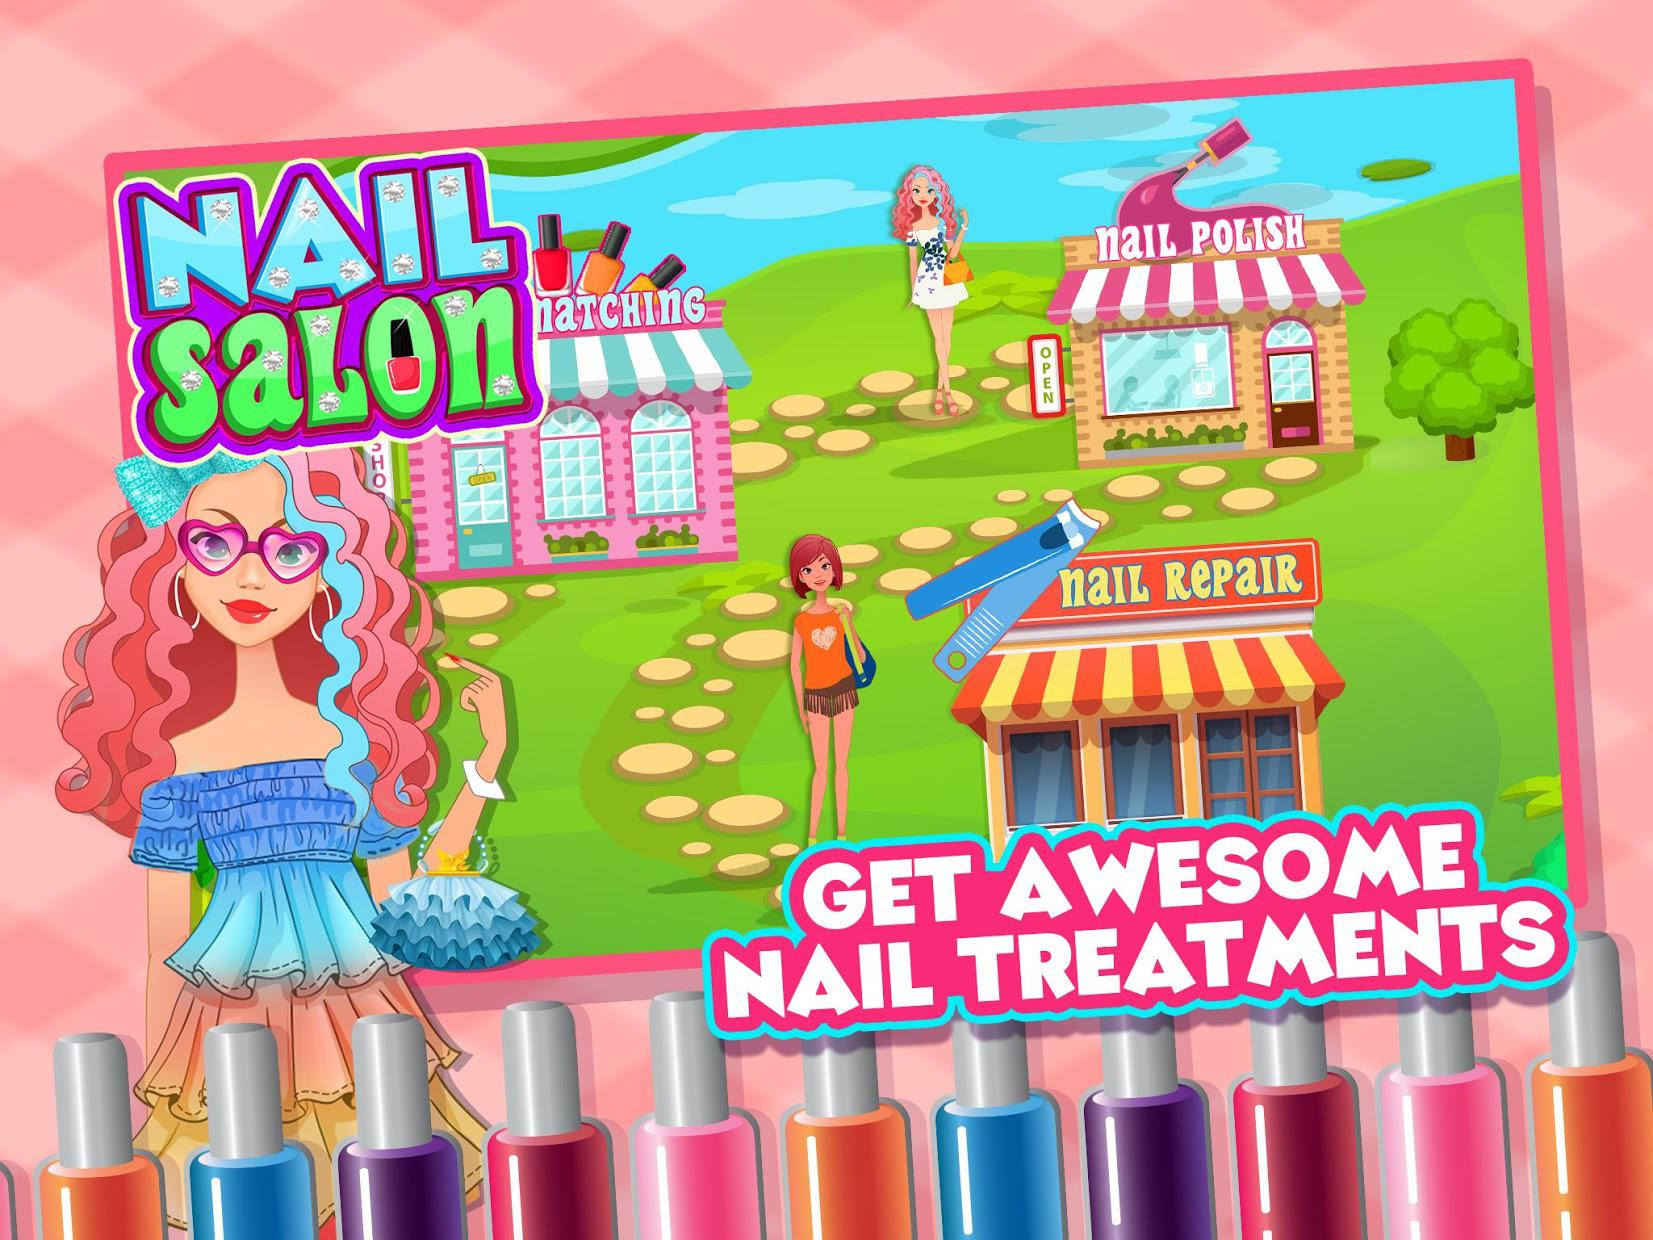 Nail Salon - Nail Polish, Matching & Repair 游戏截图5